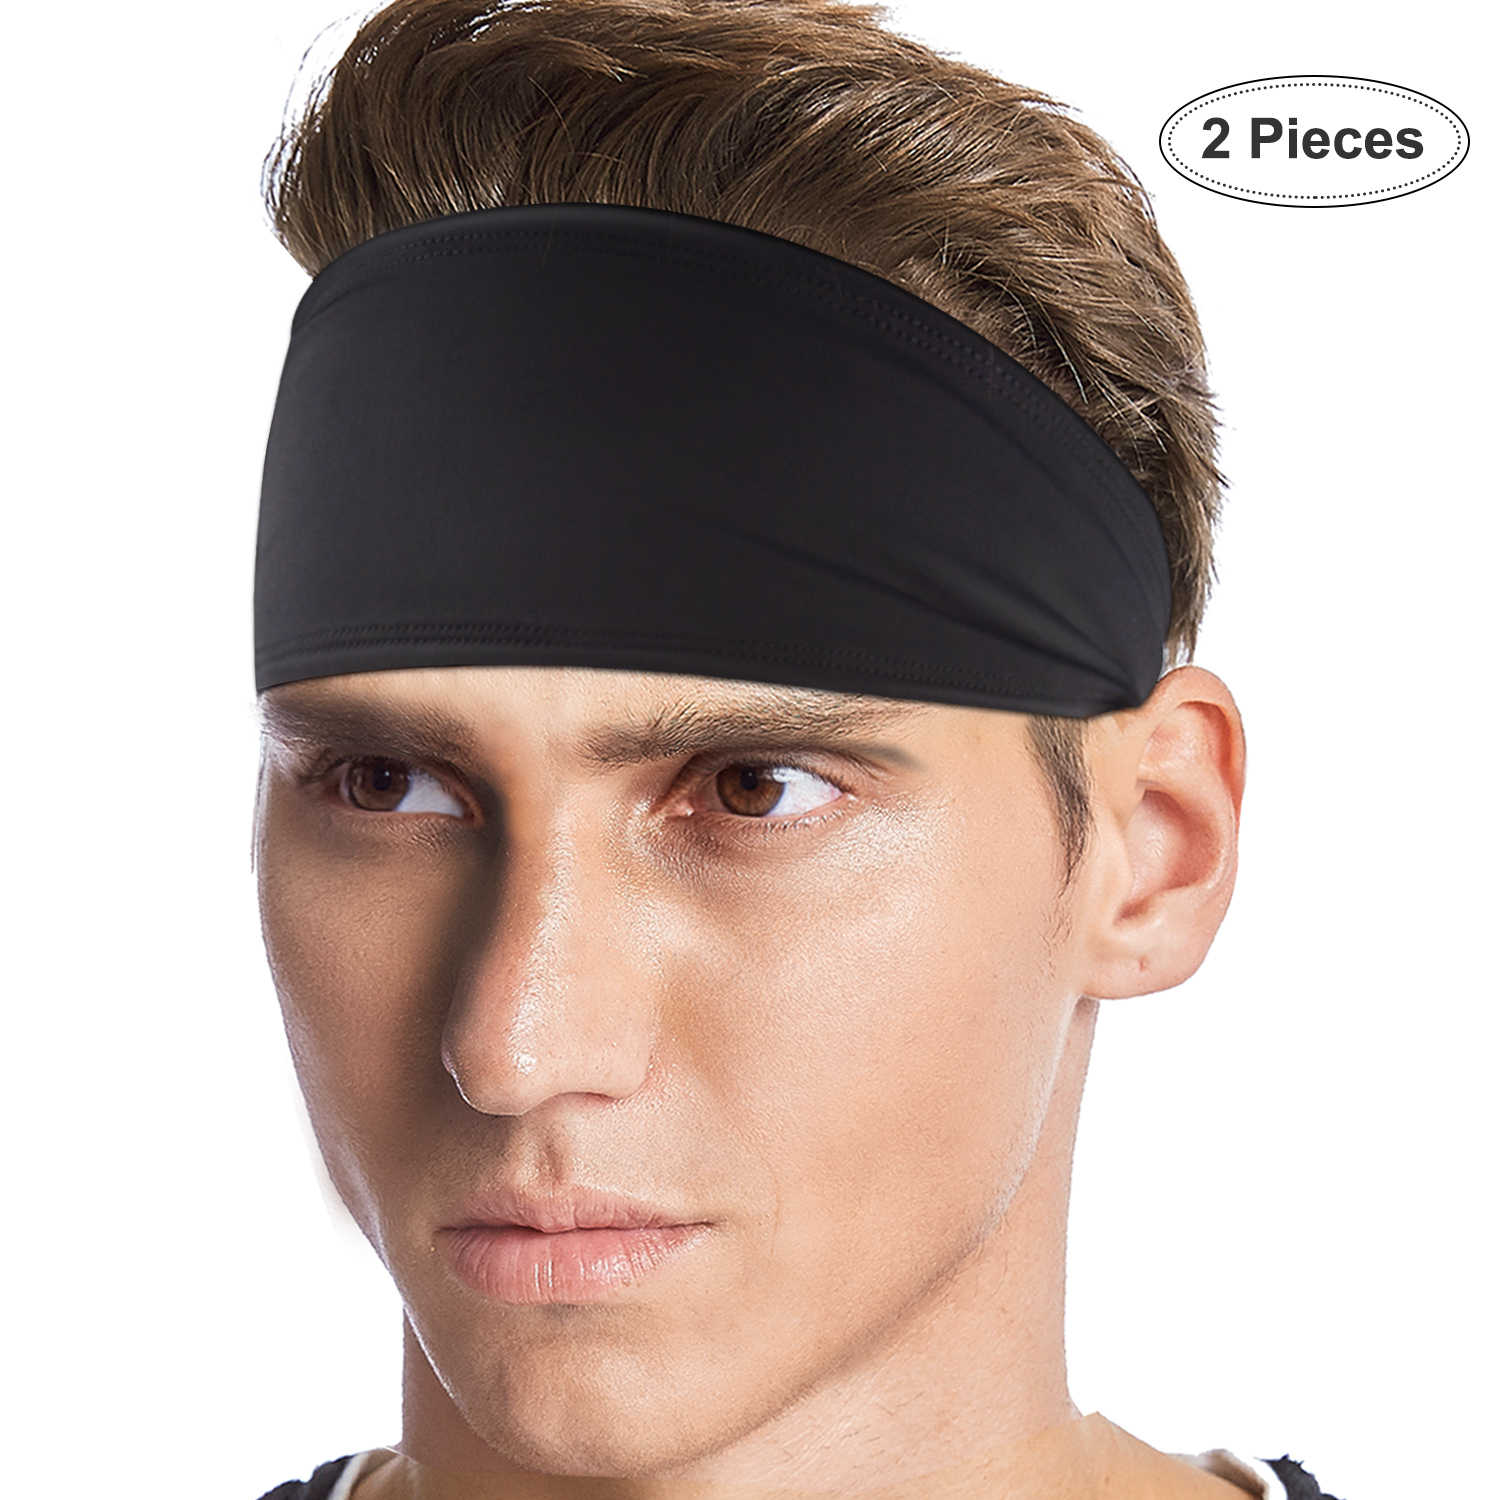 BXIO Mens Running Headbands, Moisture Wicking Head Sweatbands for Sports, Cycling, Yoga Football Basketball and Exercise,Black